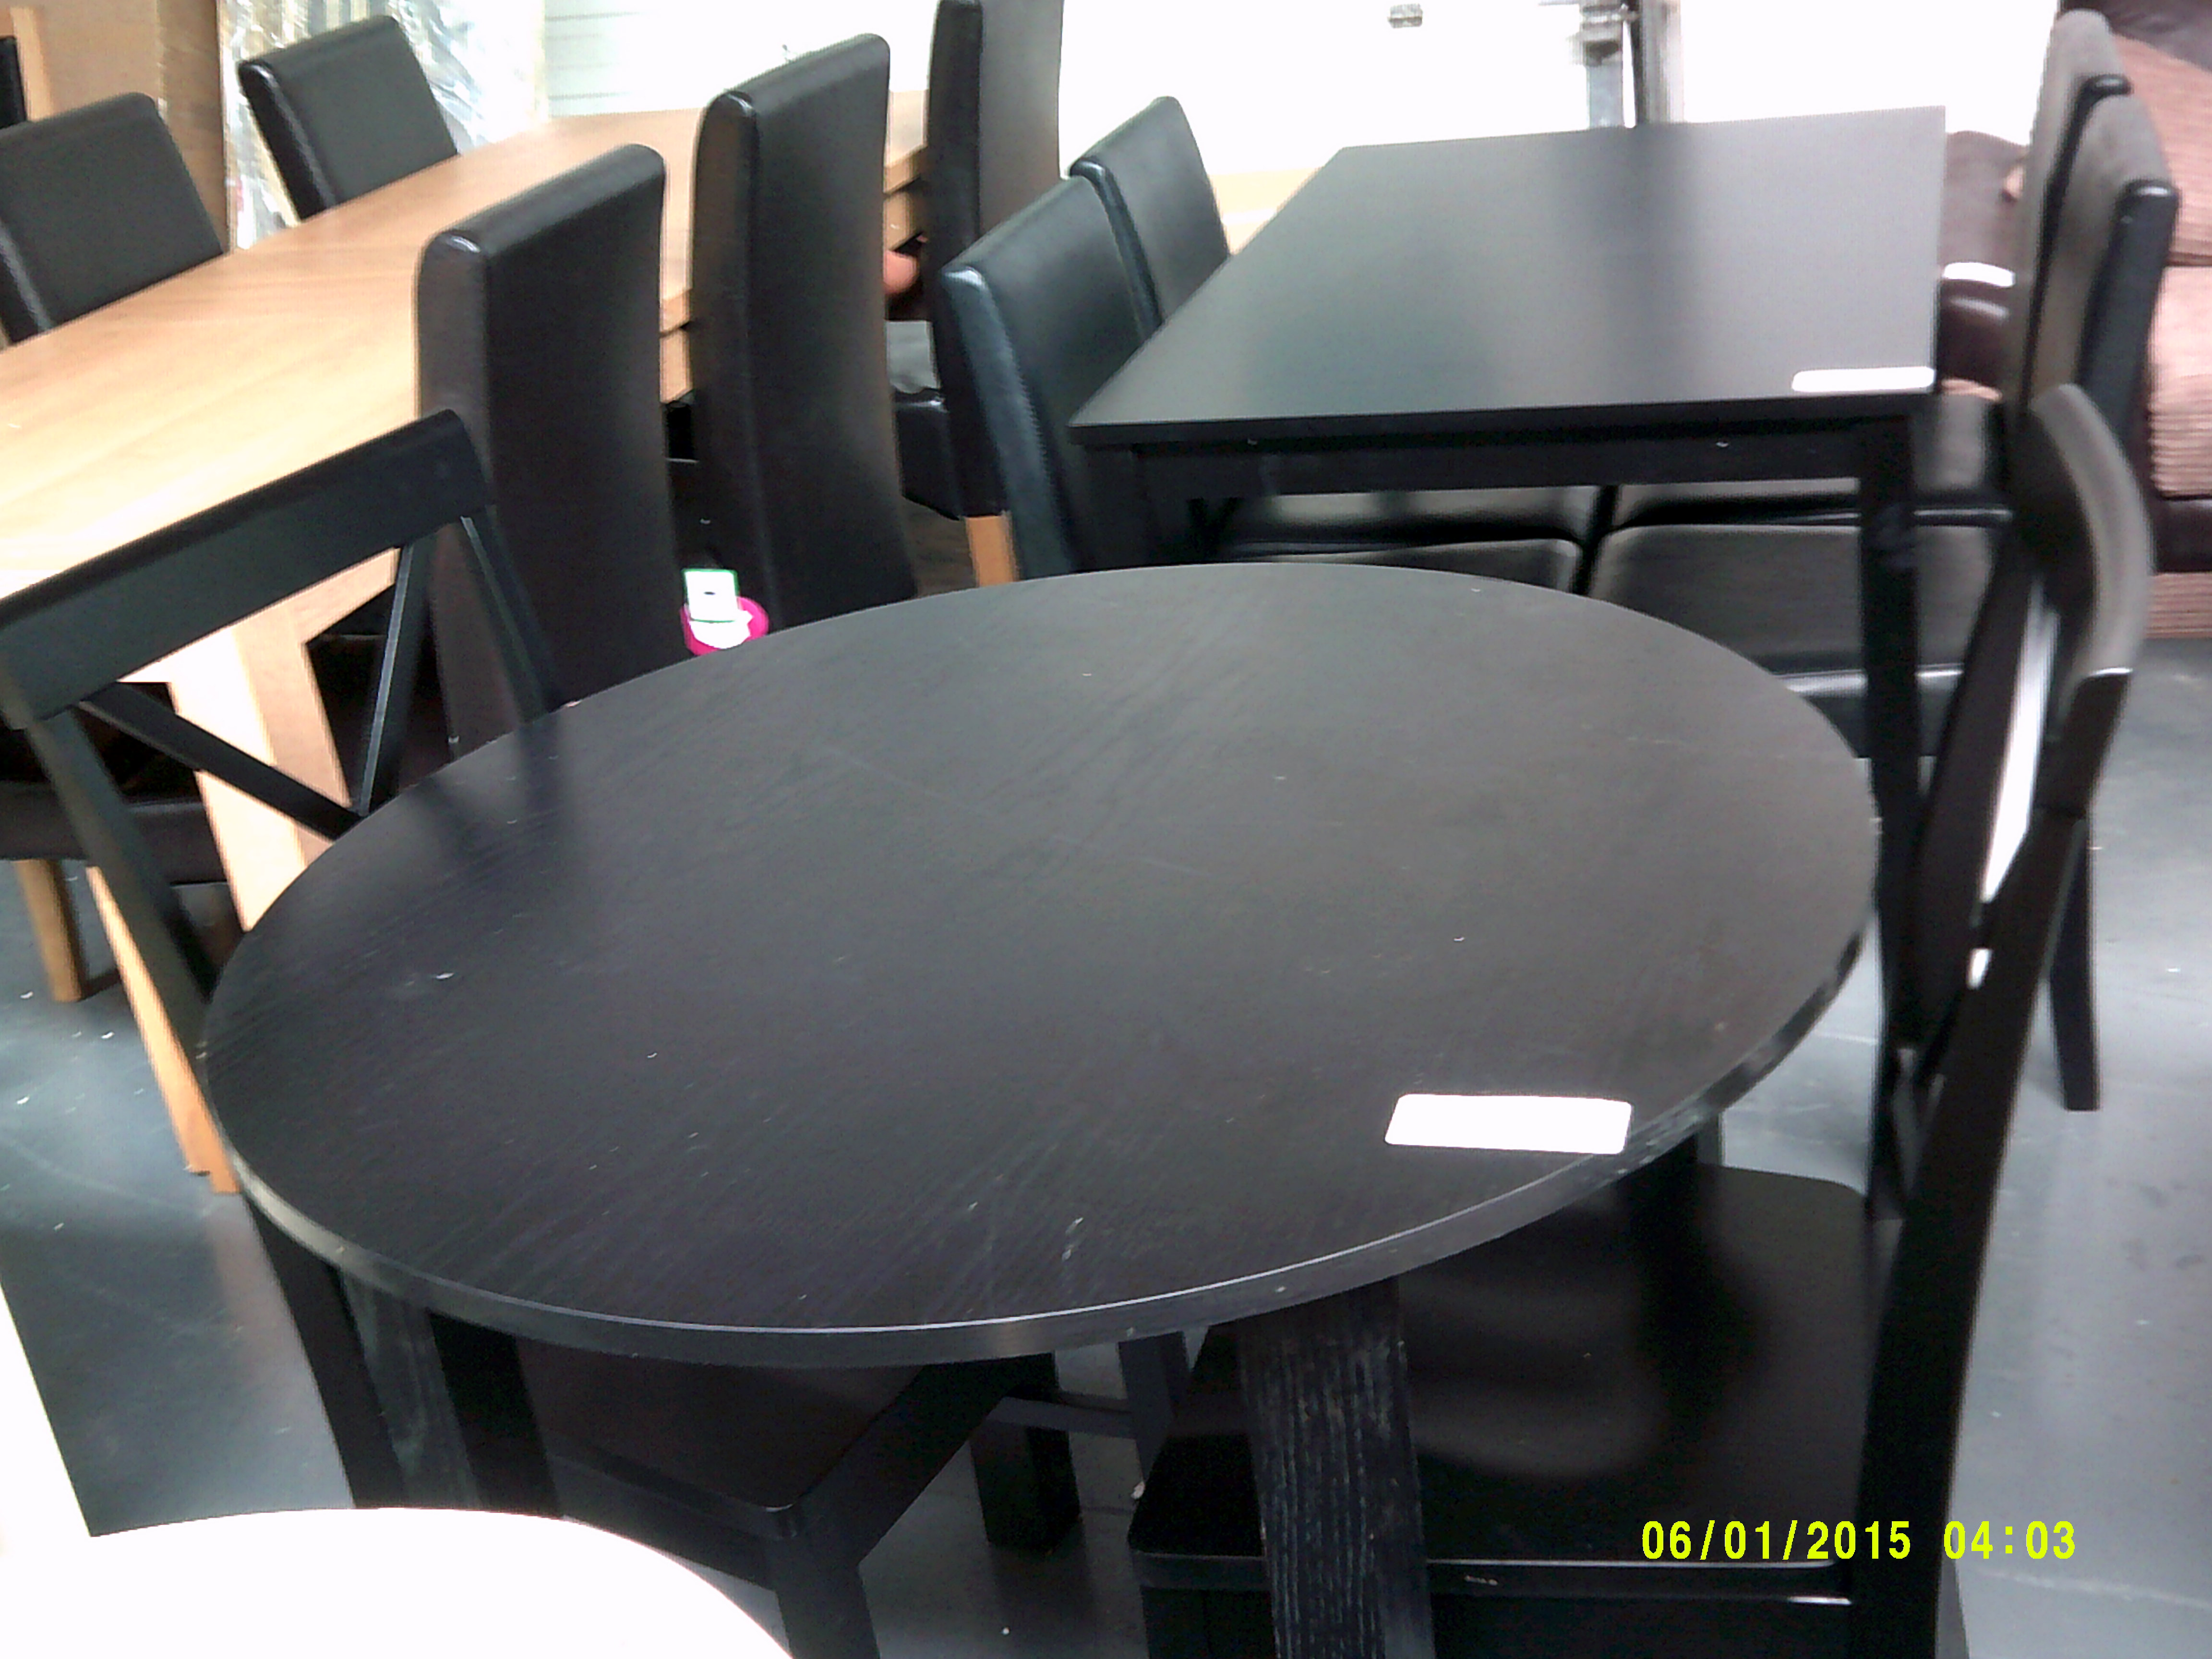 Lot 52 - Dining Black Table and 2 Cross Black Chairs Customer Returns